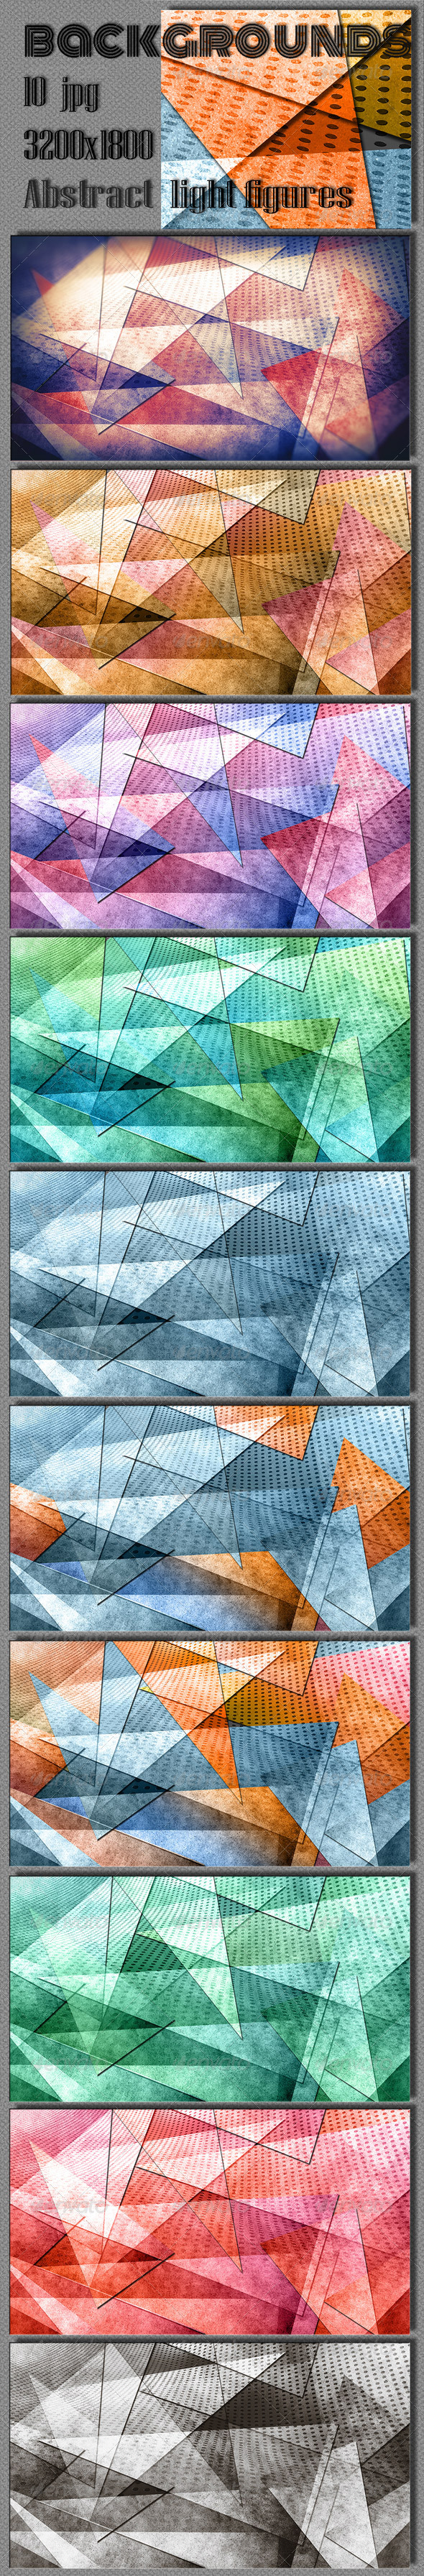 Abstract Geometric Background - Abstract Backgrounds